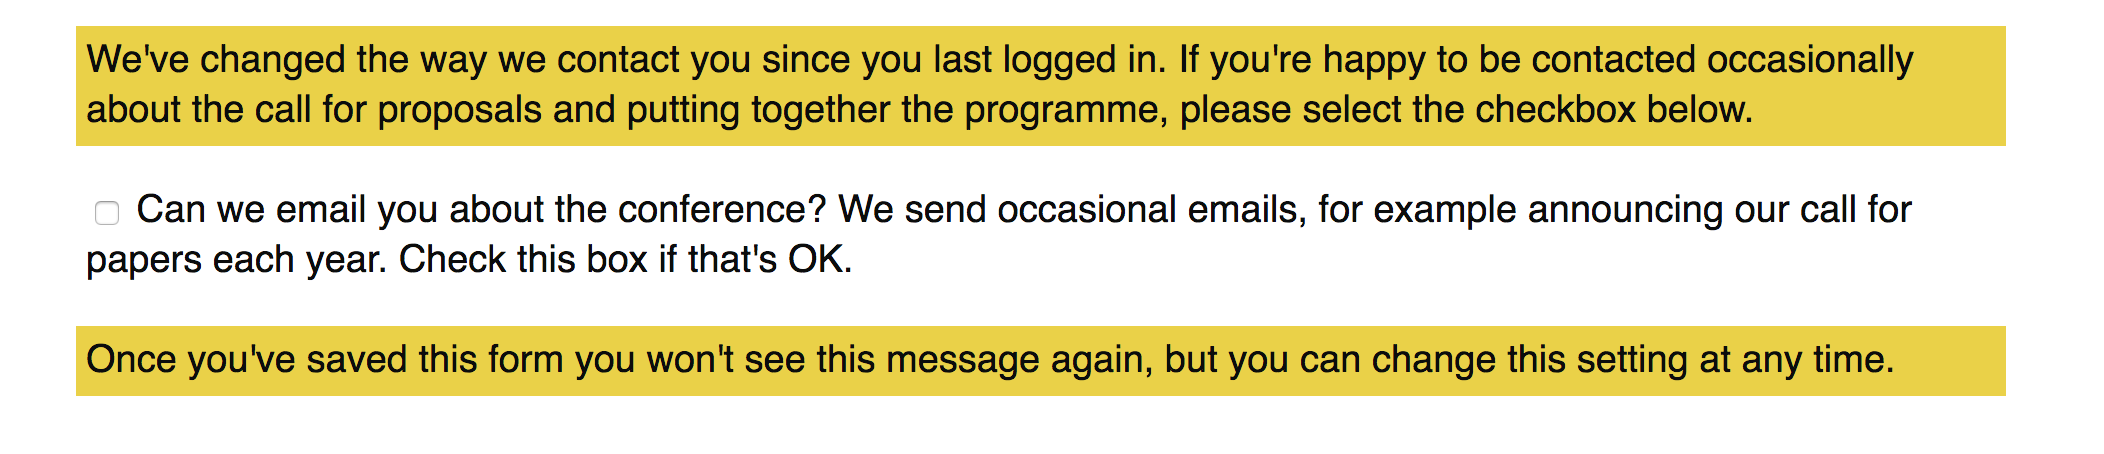 "Checkbox with label text ""Can we email you about the conference? We send occasional emails, for example announcing our call for papers each year. Check this box if that's OK"""